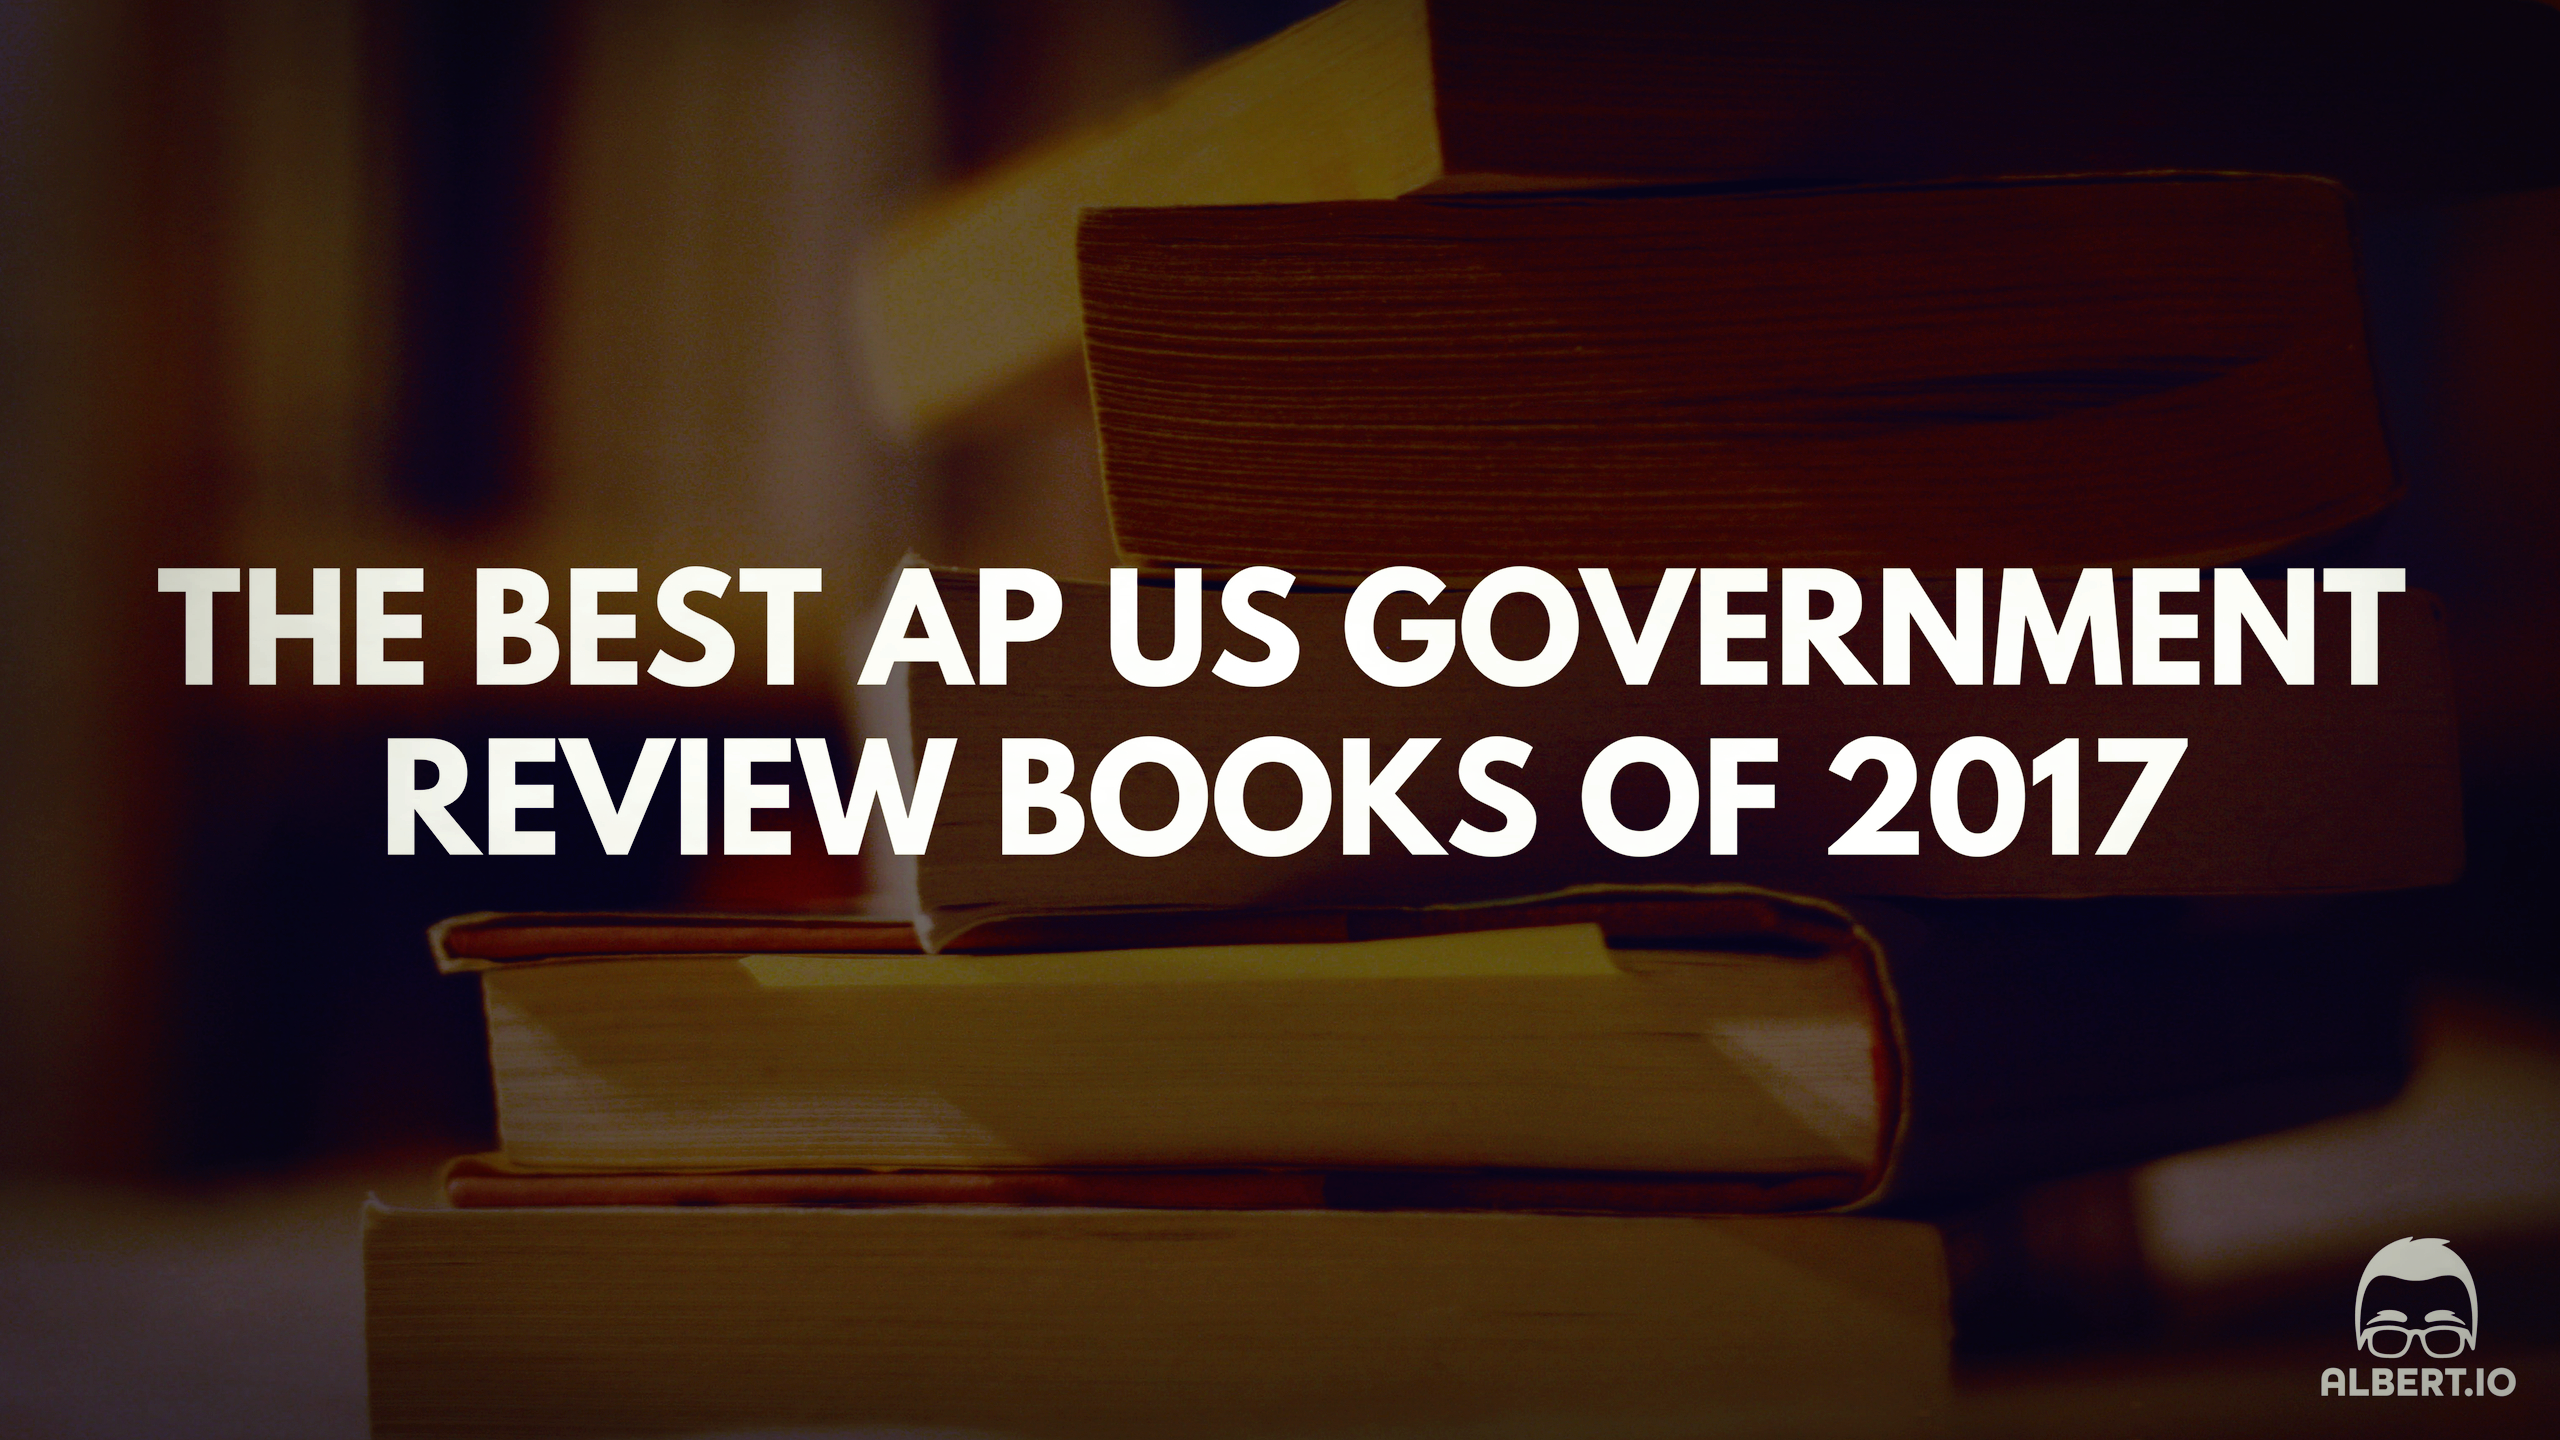 The Best AP US Government Review Books of 2017 https://www.albert.io/blog/best-ap-us-government-review-books-of-2017/